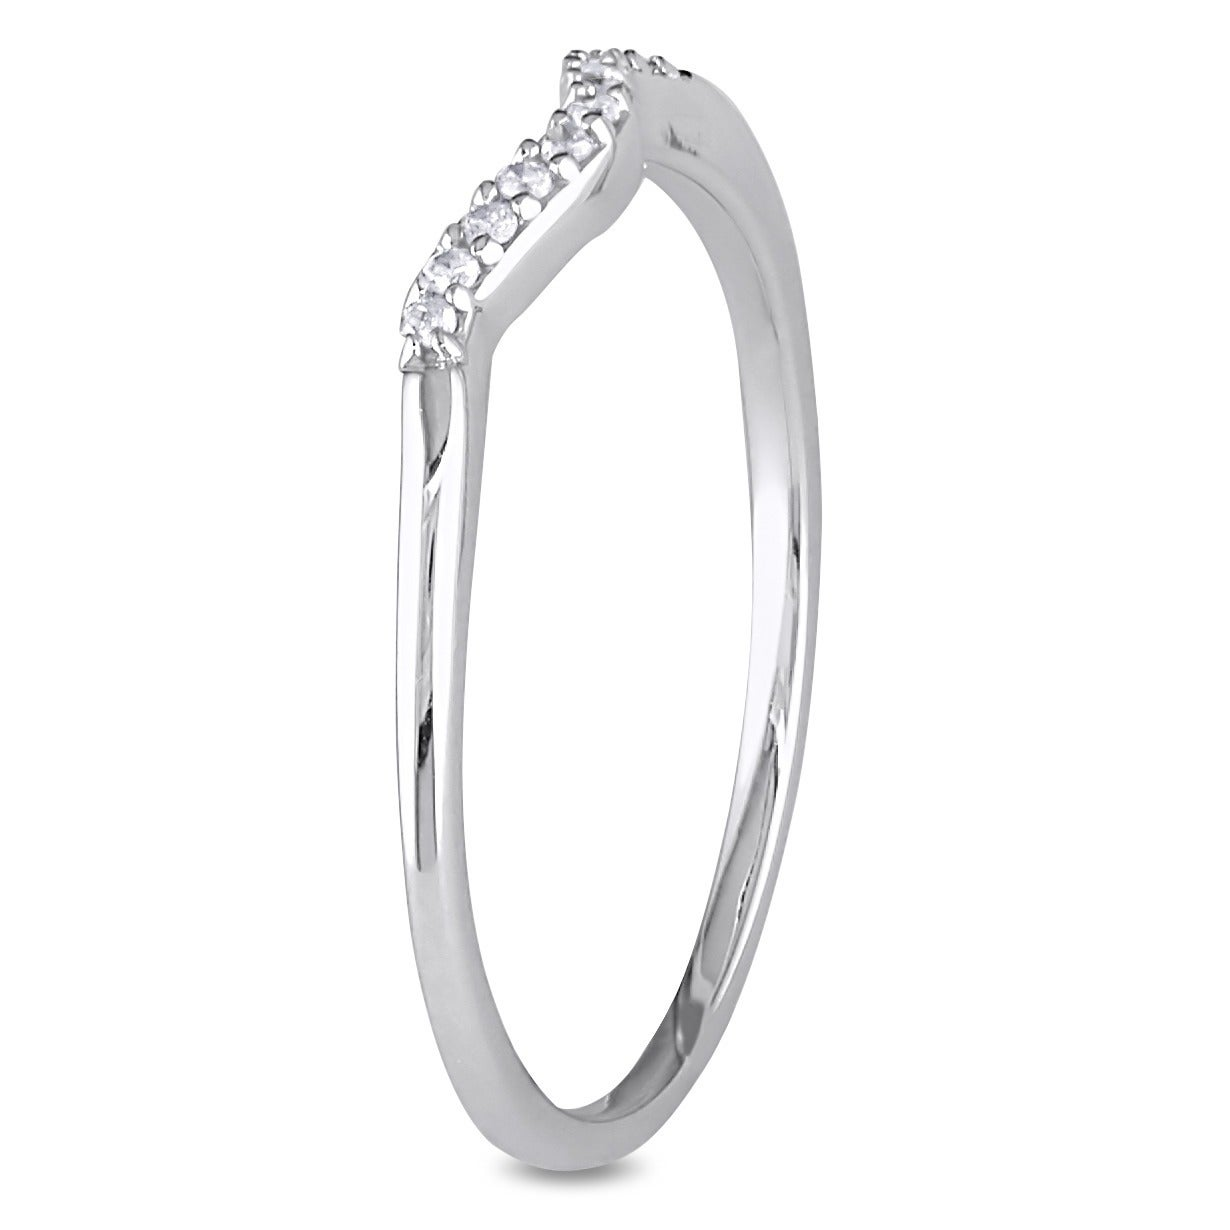 bands jeweler band ben diamond wedding contour jewelry bridge